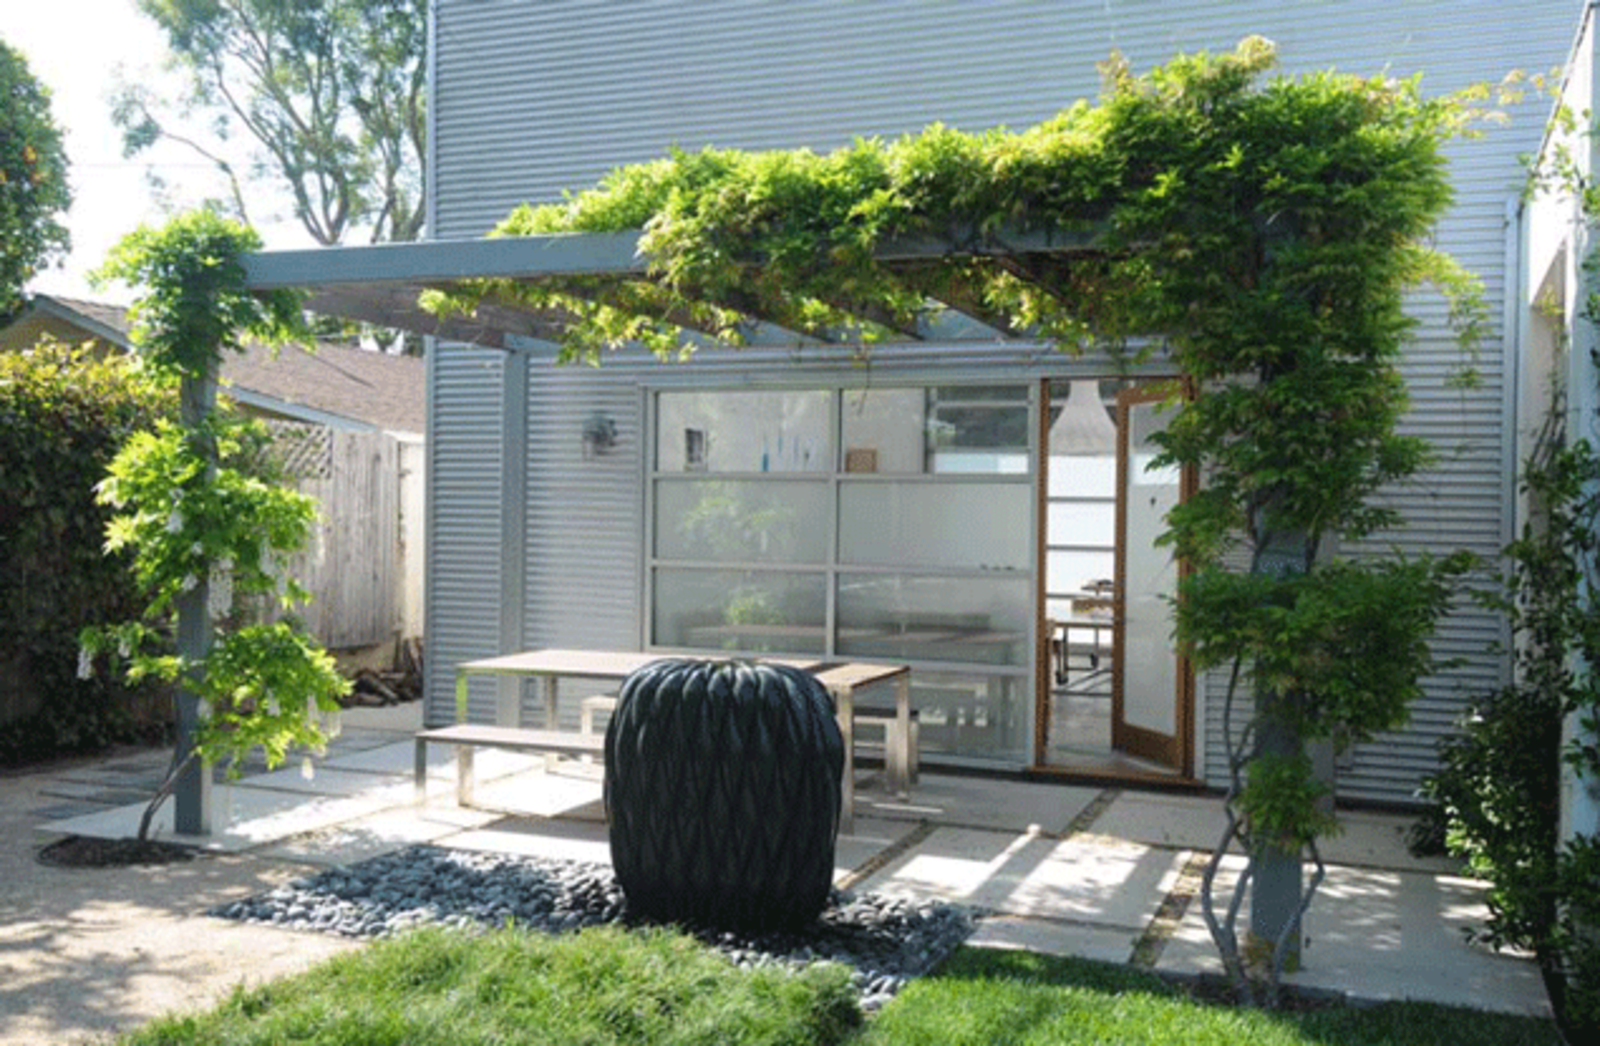 The art studio at the Garten & Reid Residence is located across the rear yard, and acts as a contemporary counterpoint to the house's midcentury leanings.  The Great Outdoors from Dwell Los Angeles Home Tours Day #1 Preview: West Side